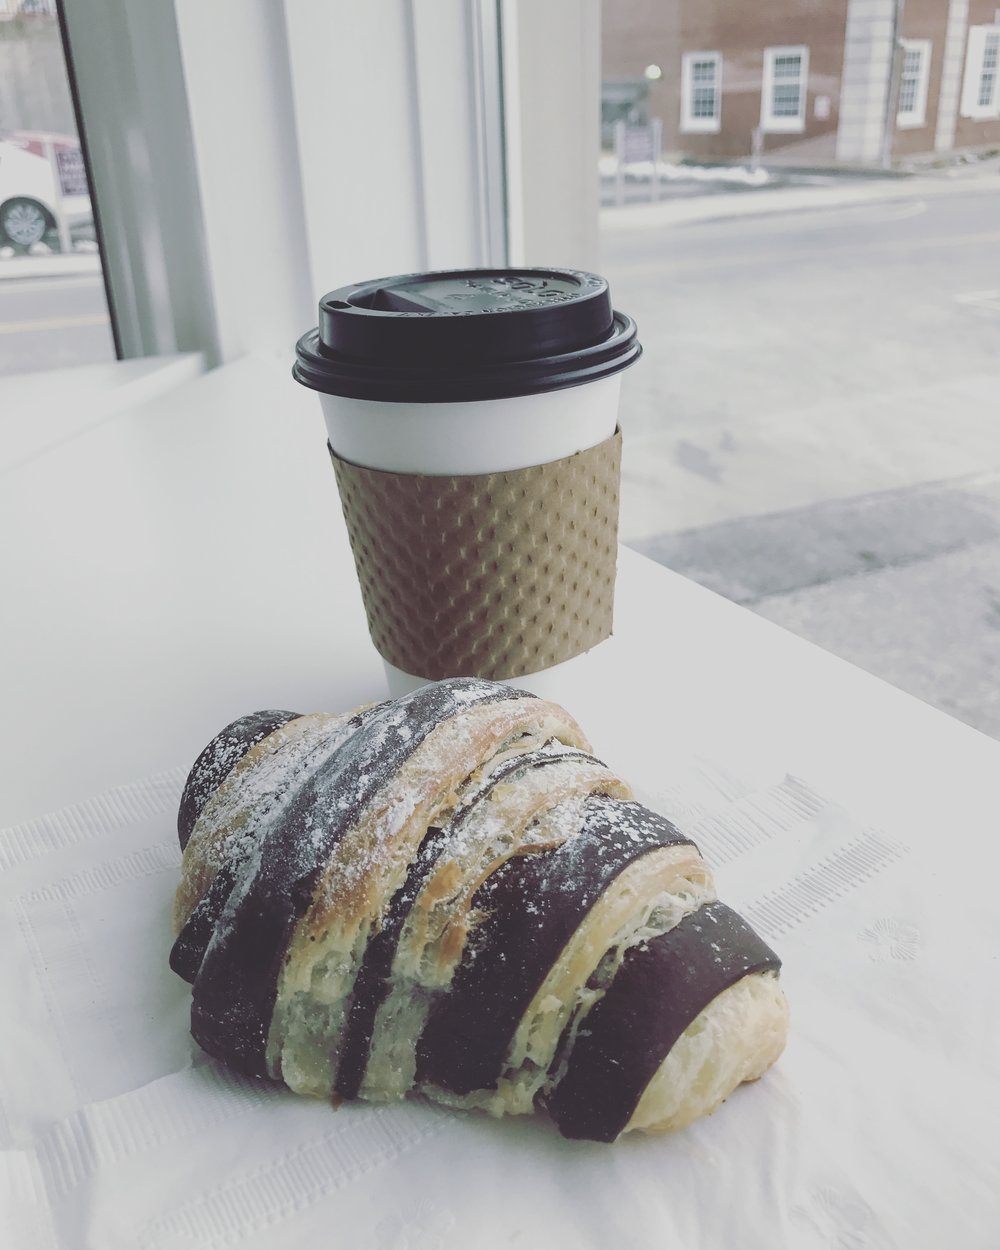 The infamous chocolate croissant!